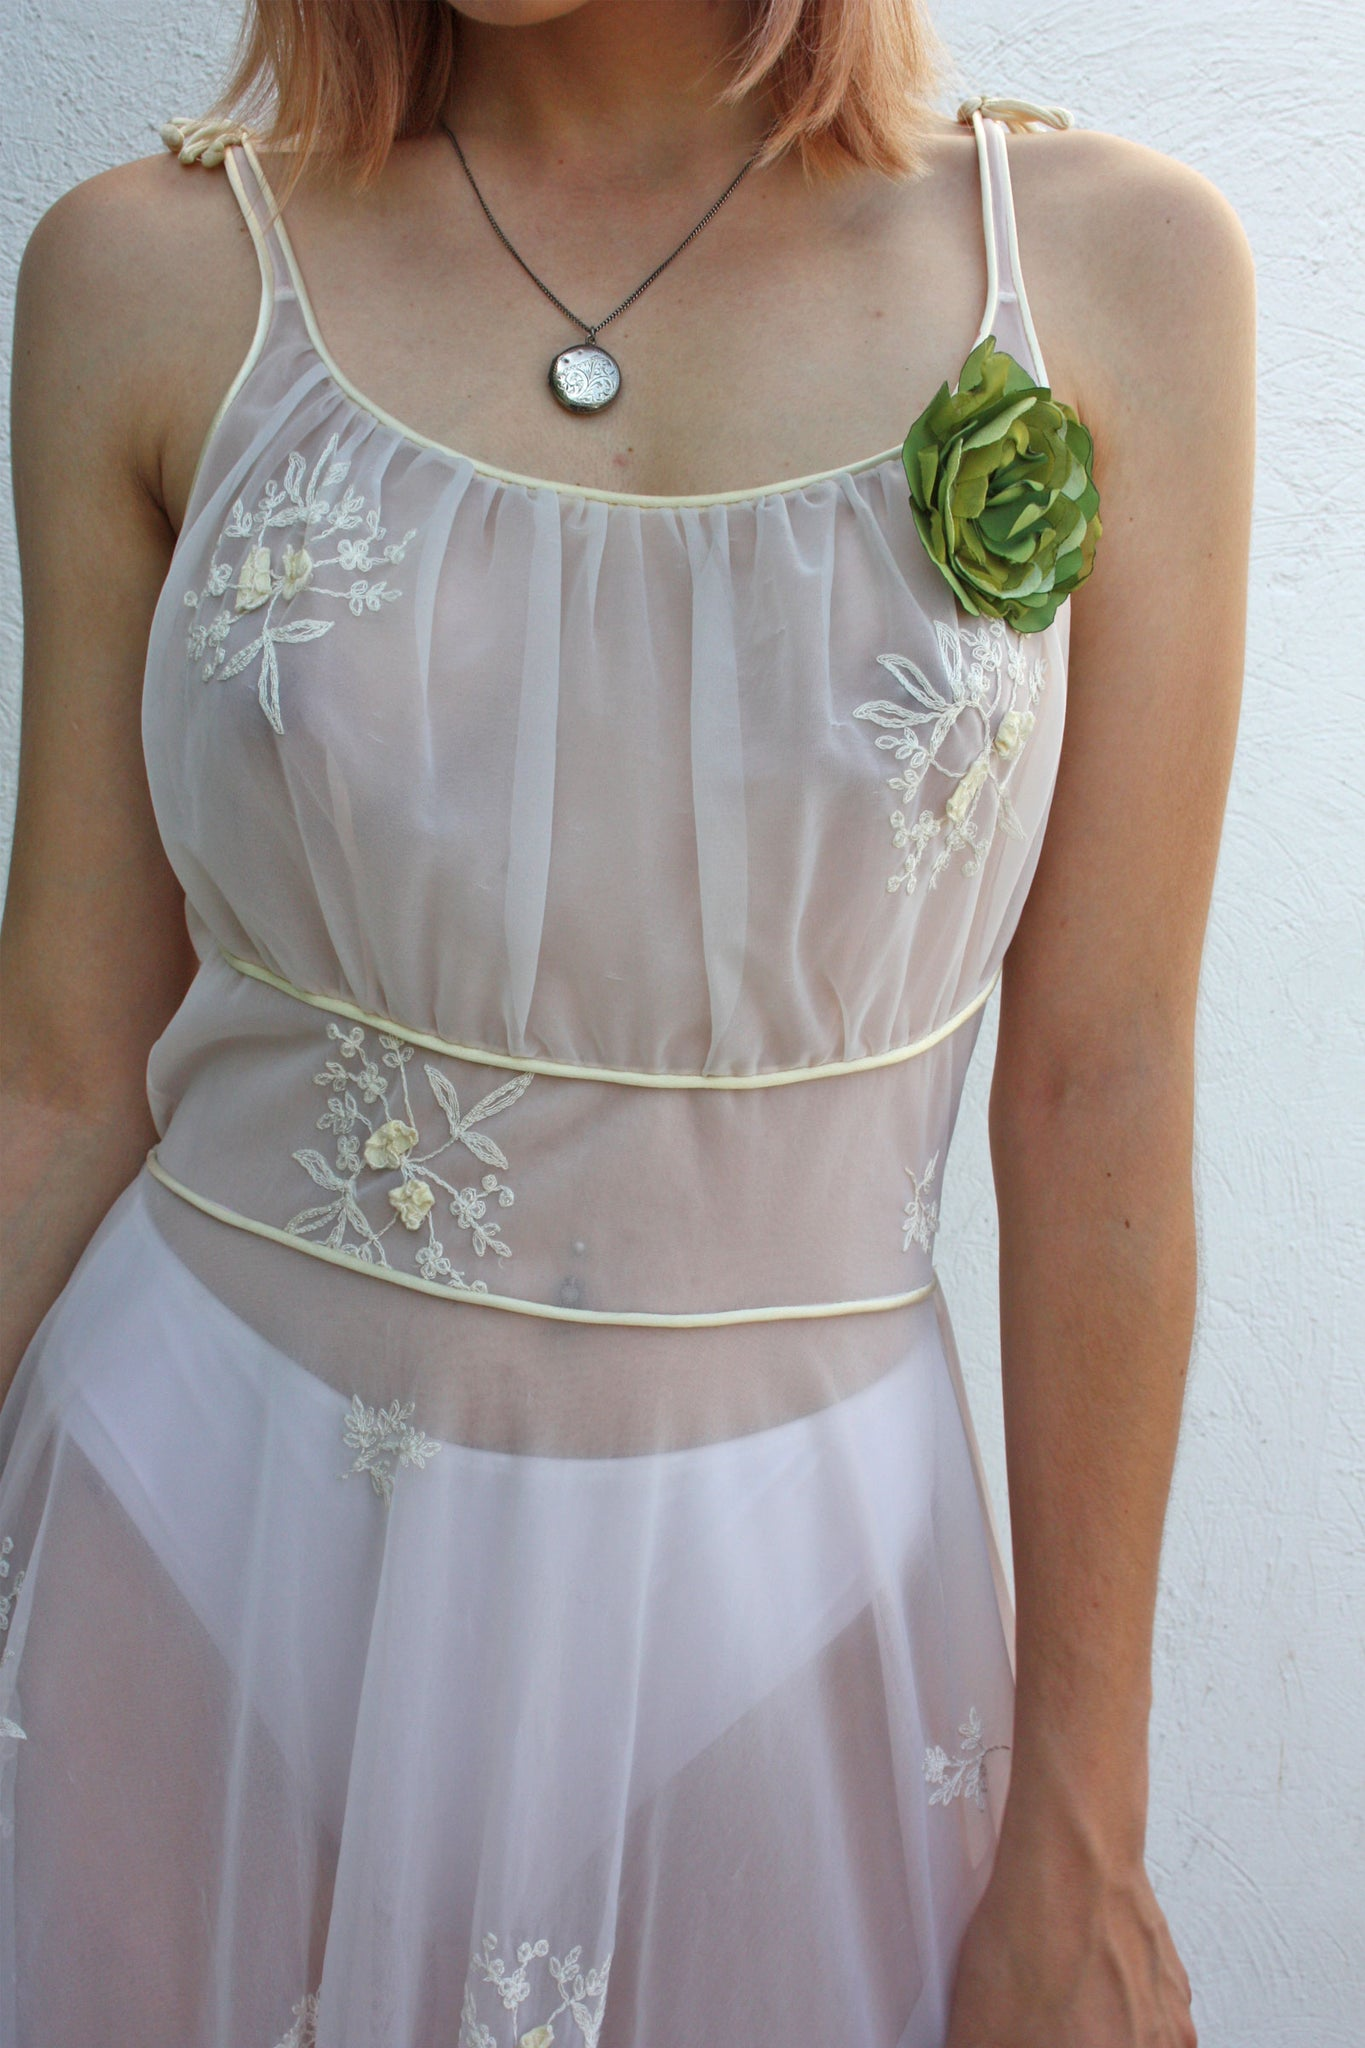 40's lingerie white vintage dress - Shop SoLovesVintage